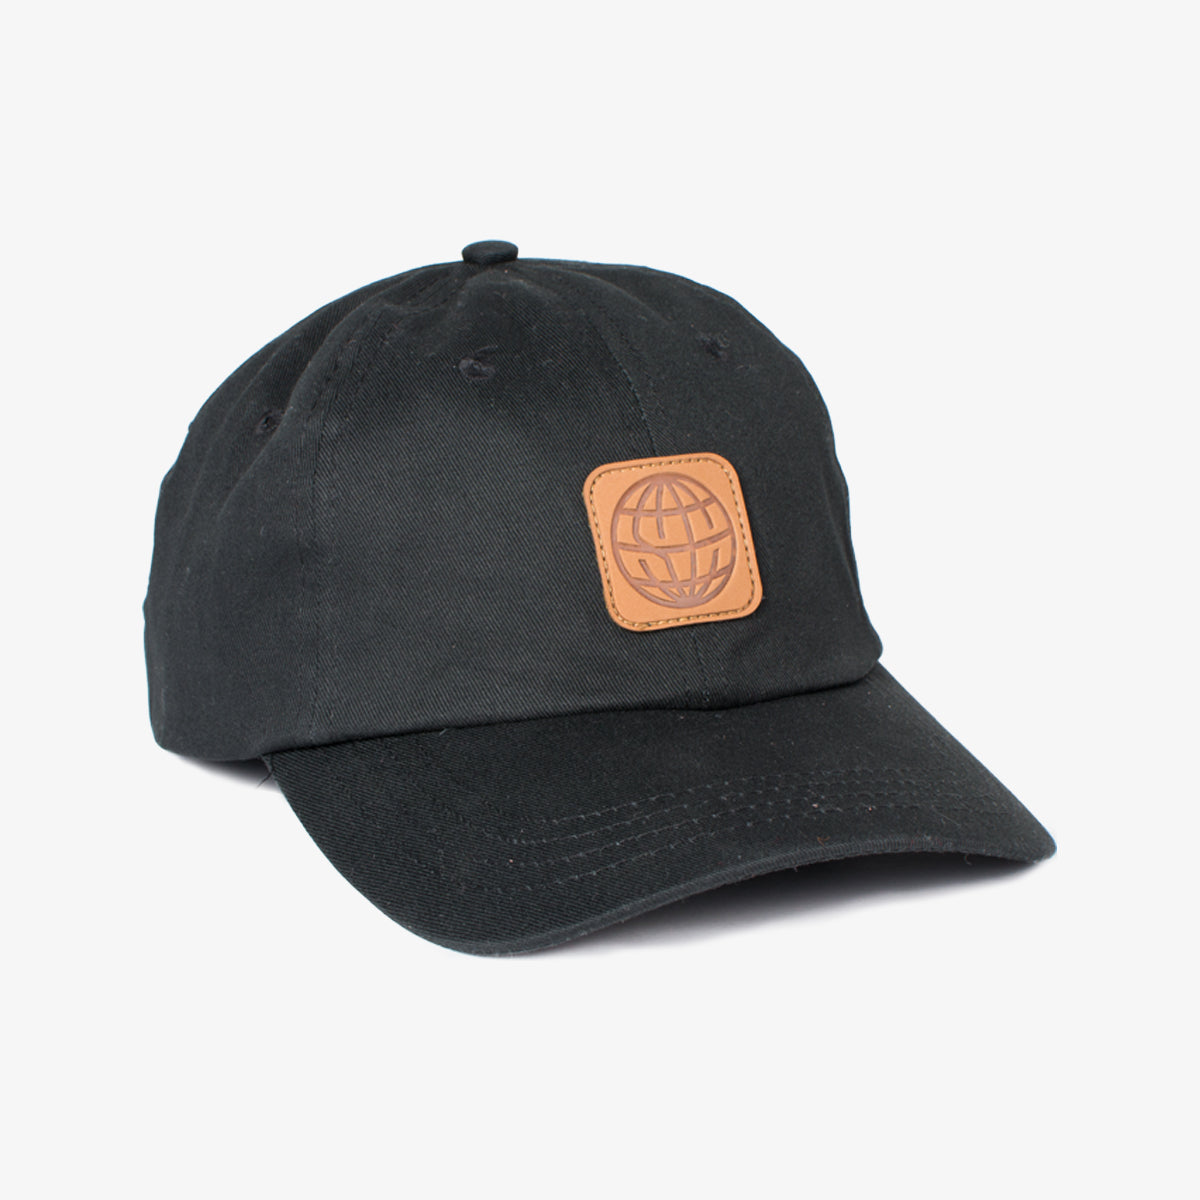 ... State Champs - Globe Patch Hat ... 044b99c425c